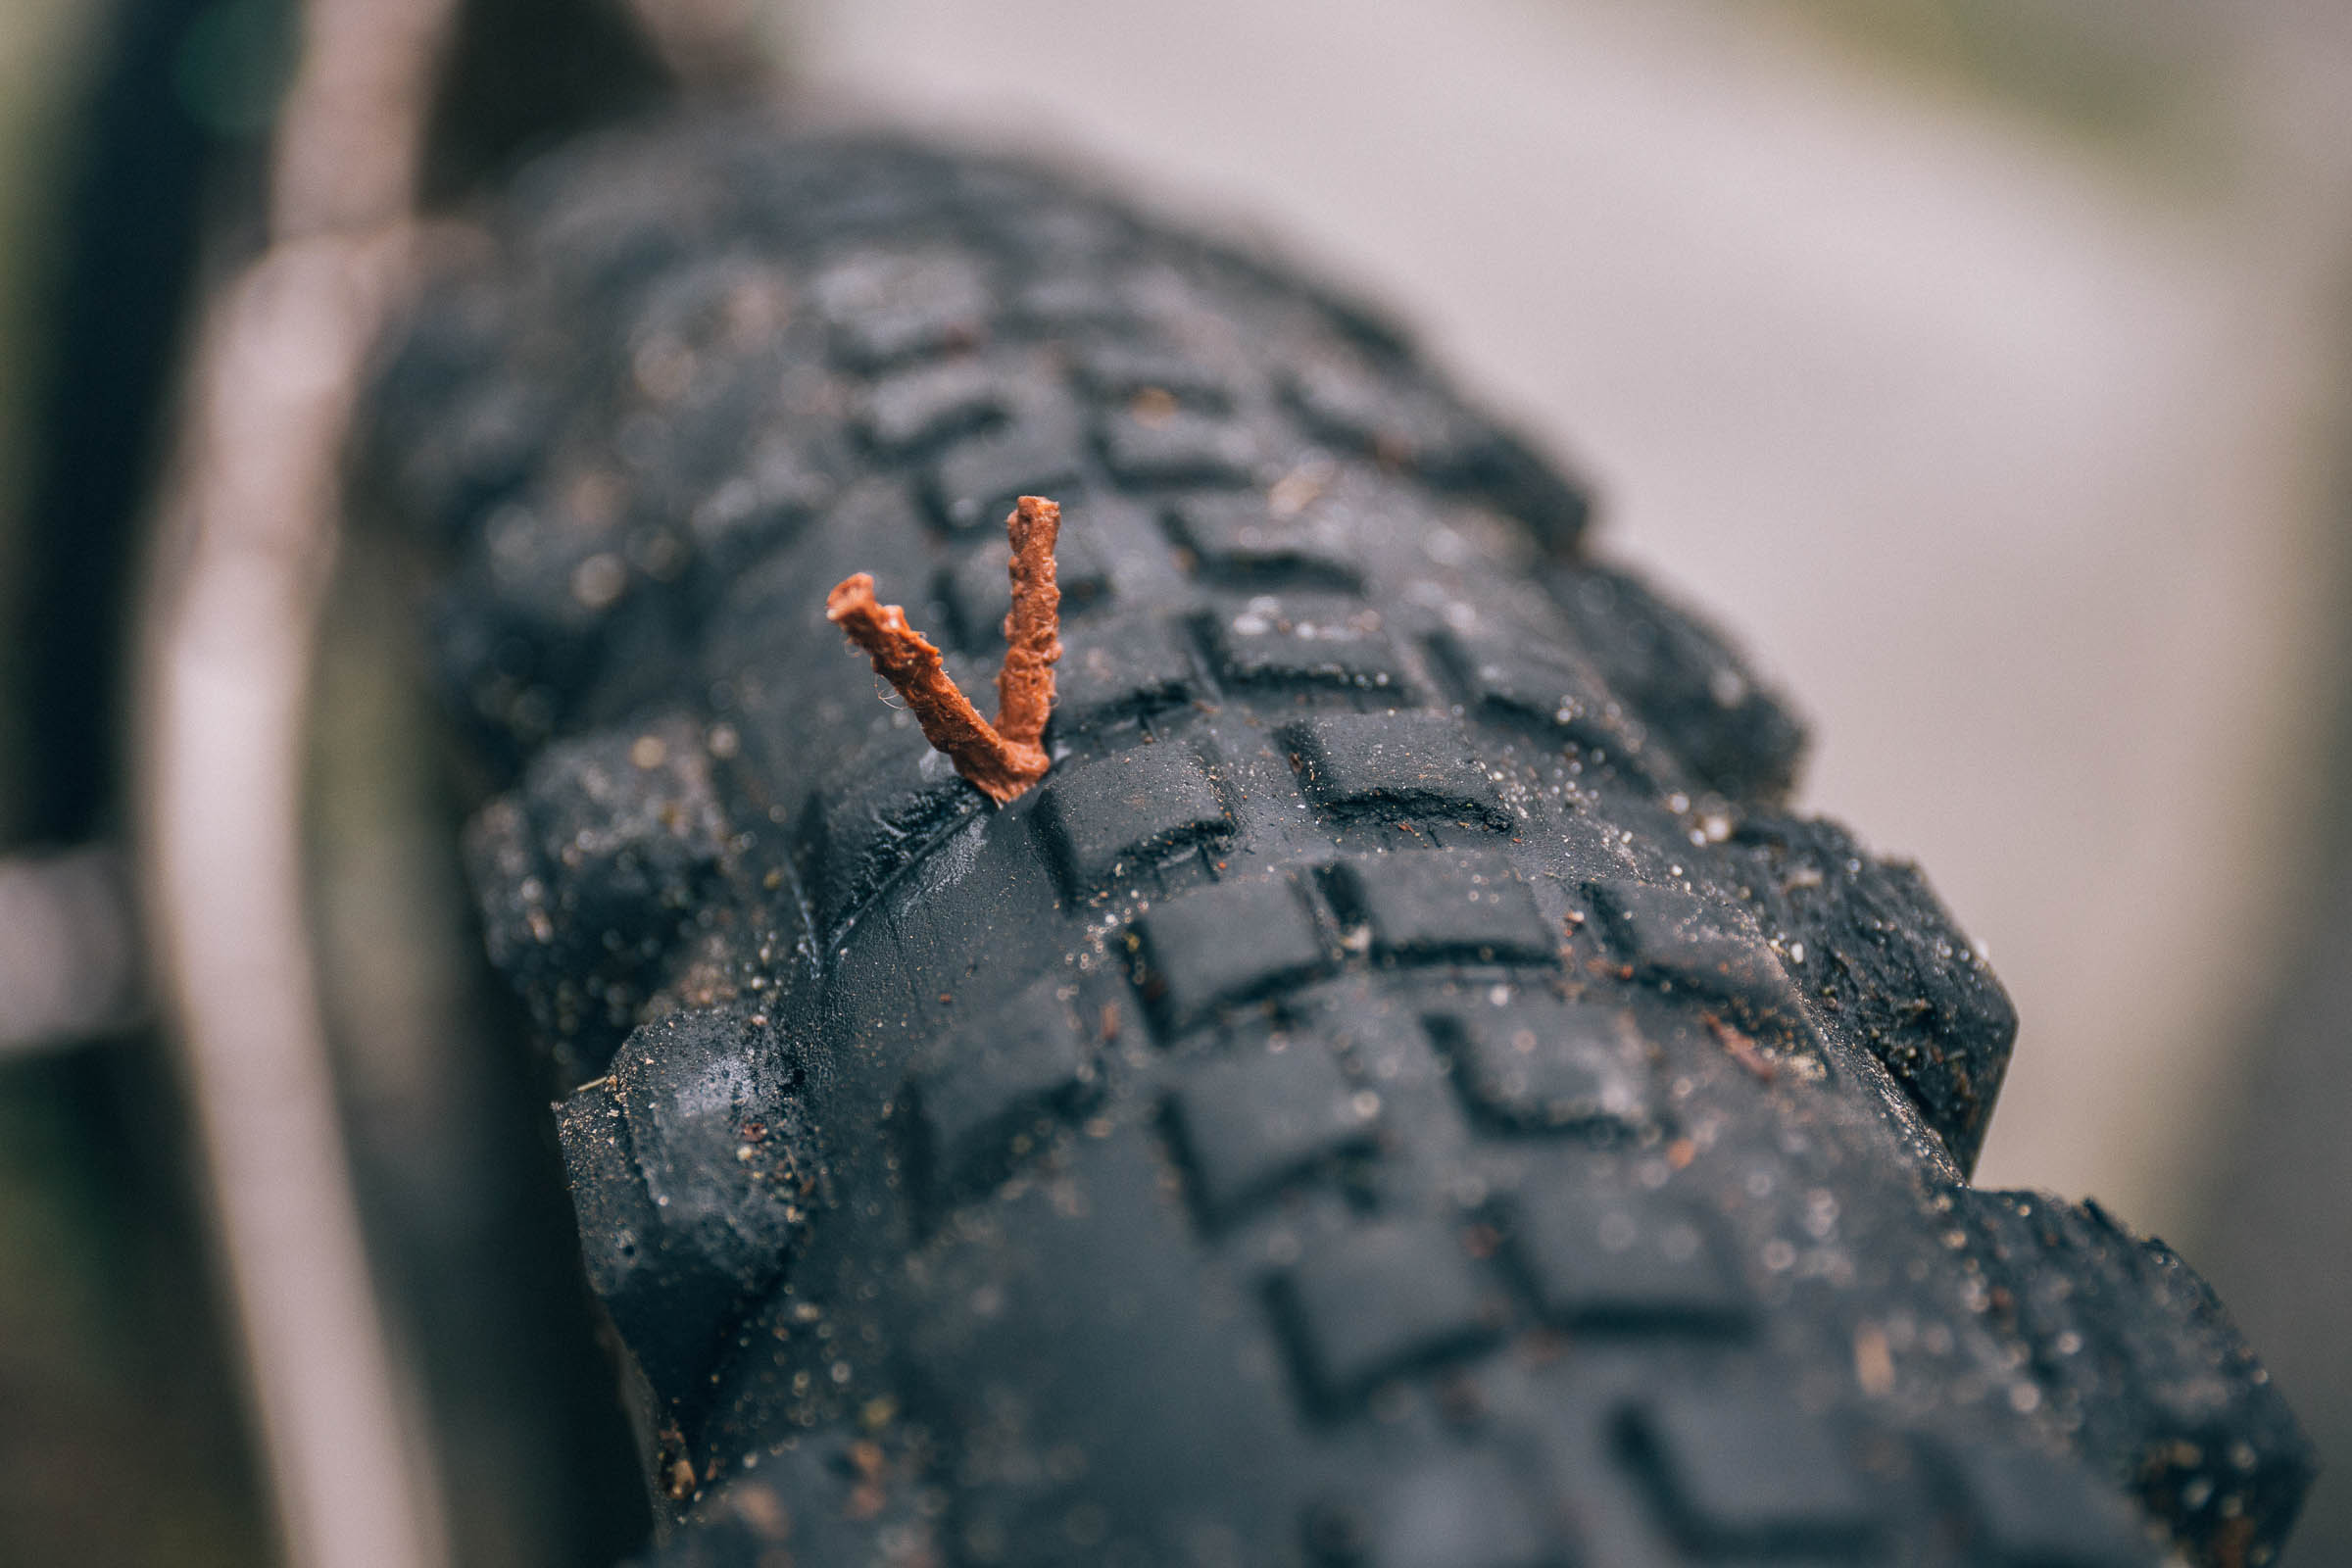 Tubeless tire puncture